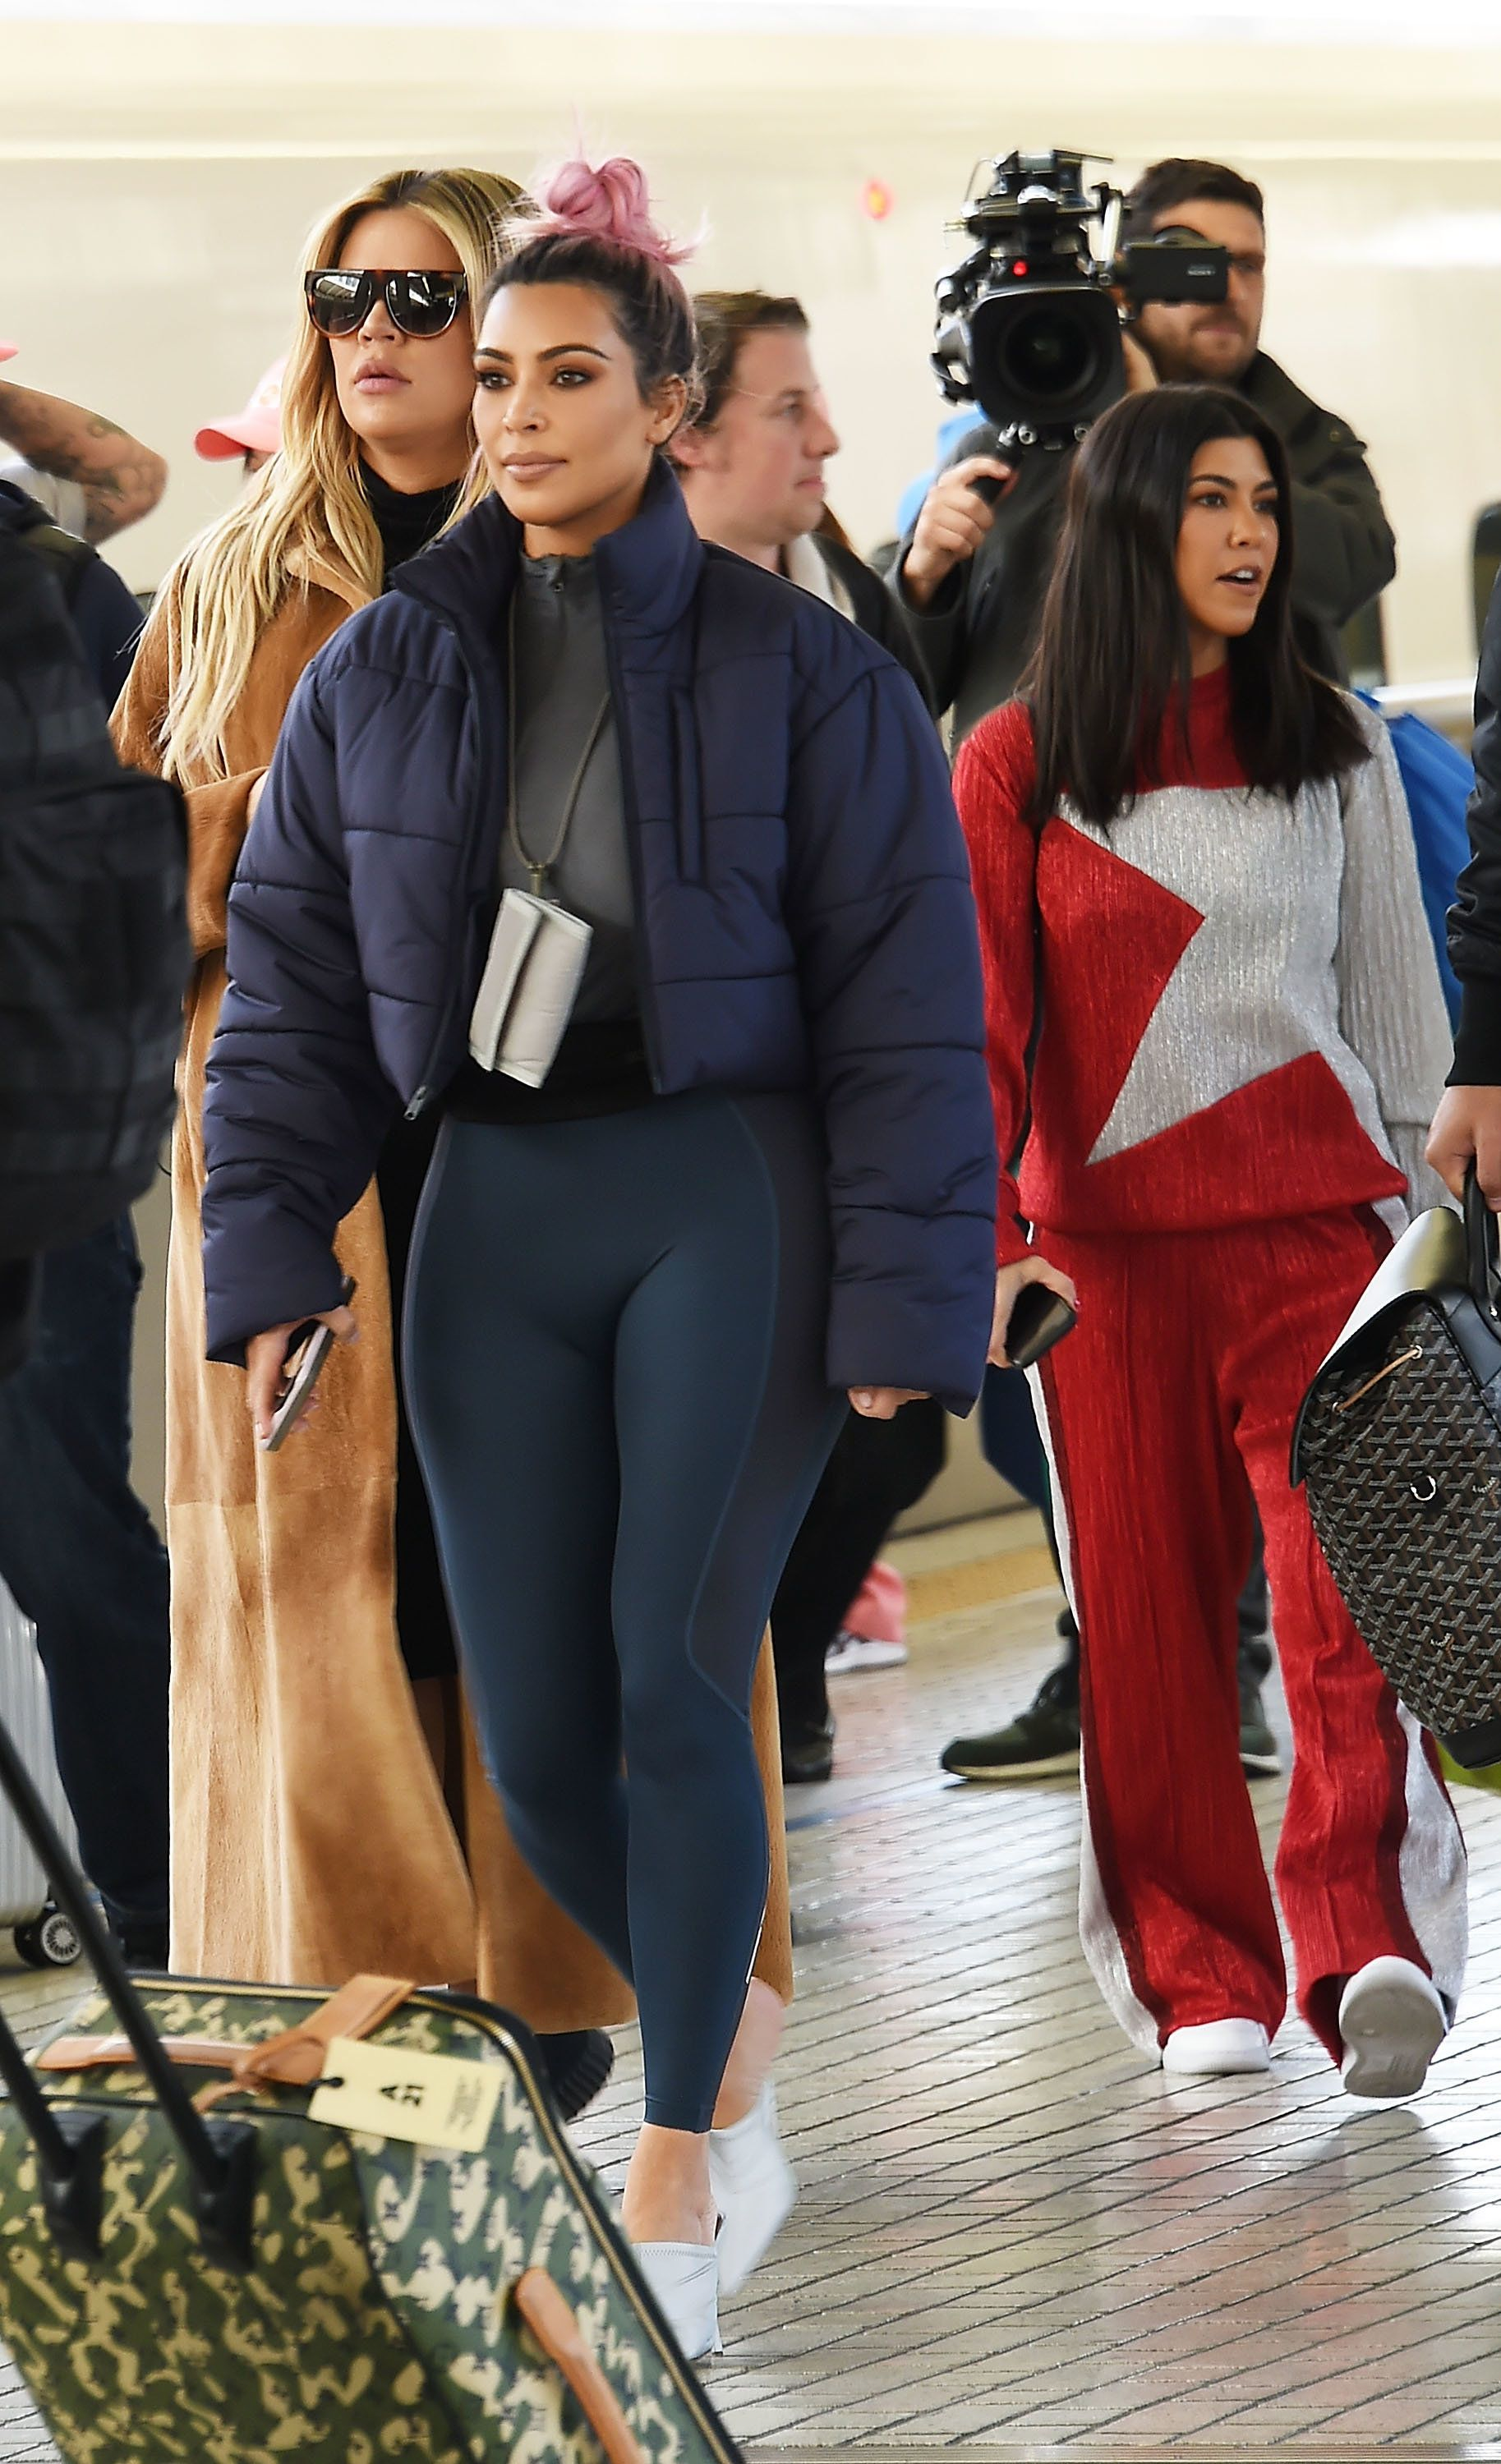 TOKYO, JAPAN - MARCH 02:  Kim Kardashian, Kourtney Kardashian and Khloe Kardashian are seen upon arrival at Tokyo Station on March 2, 2018 in Tokyo, Japan.  (Photo by Jun Sato/GC Images)